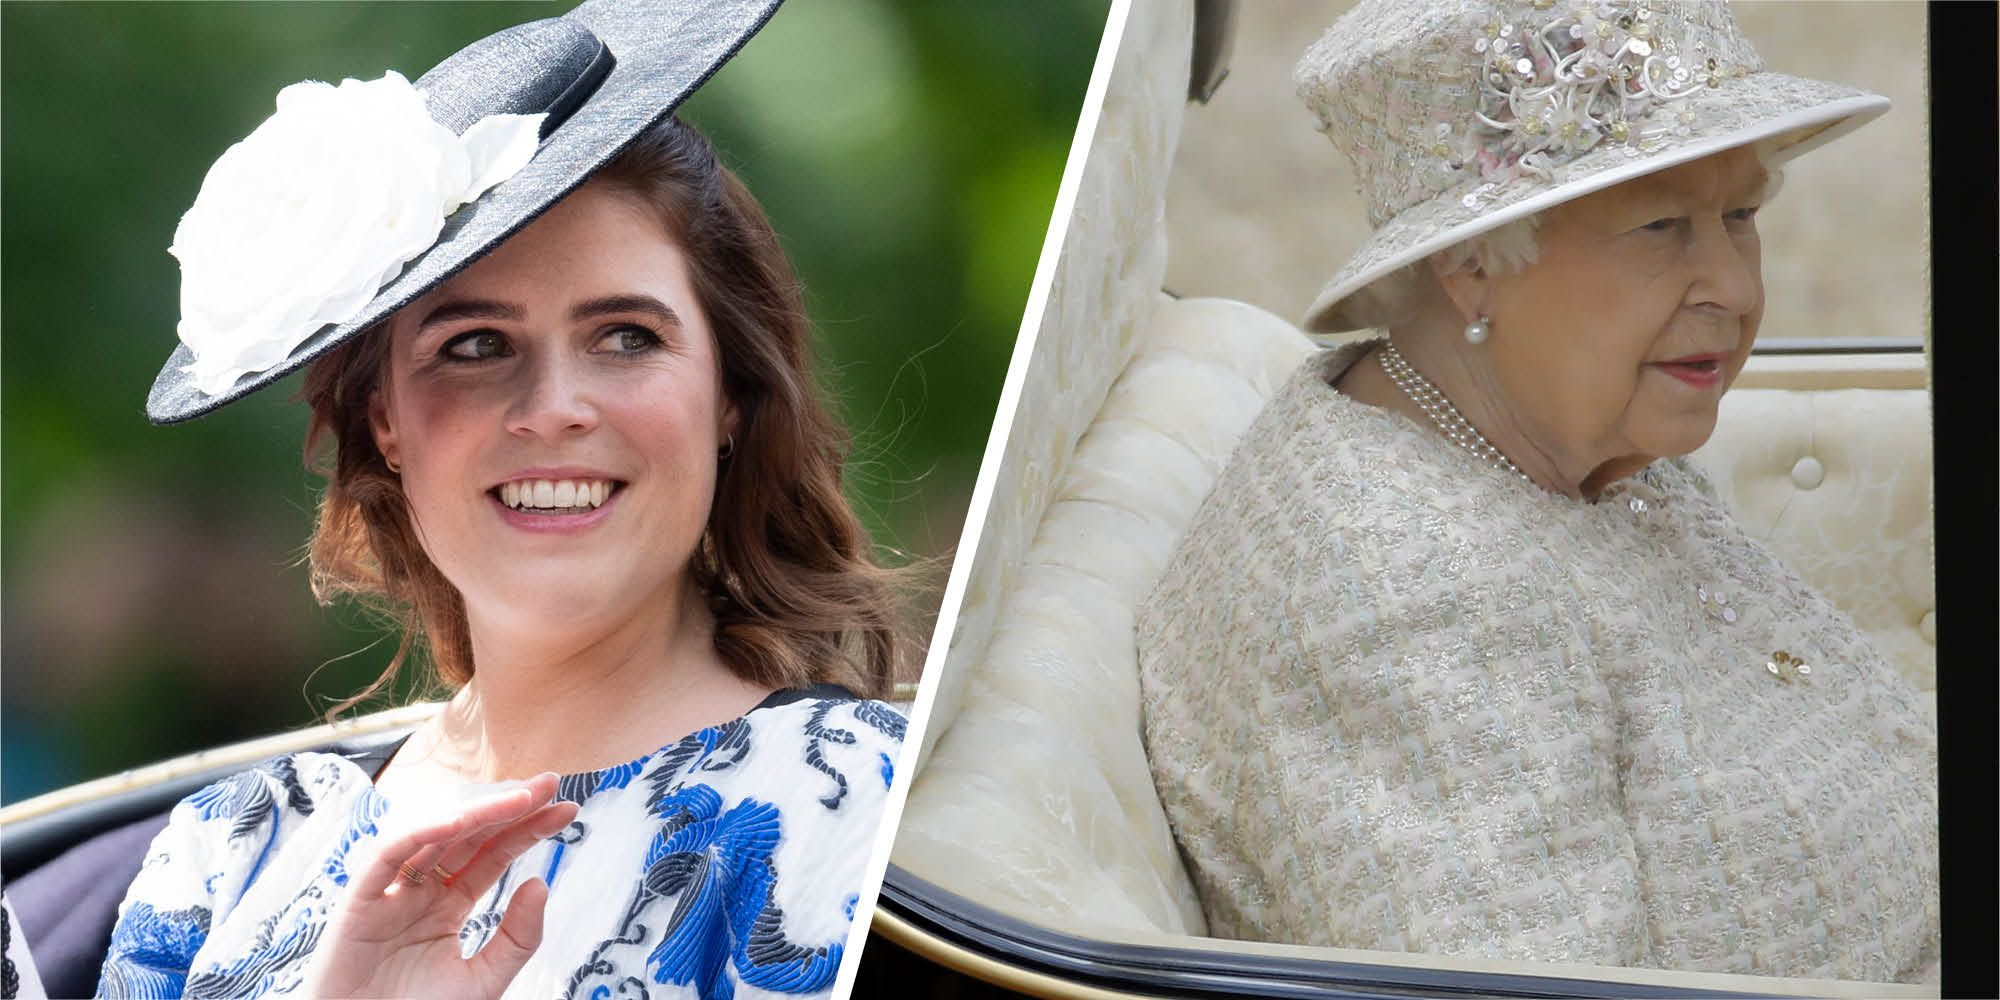 The Queen's sweet tribute to Princess Eugenie at Trooping